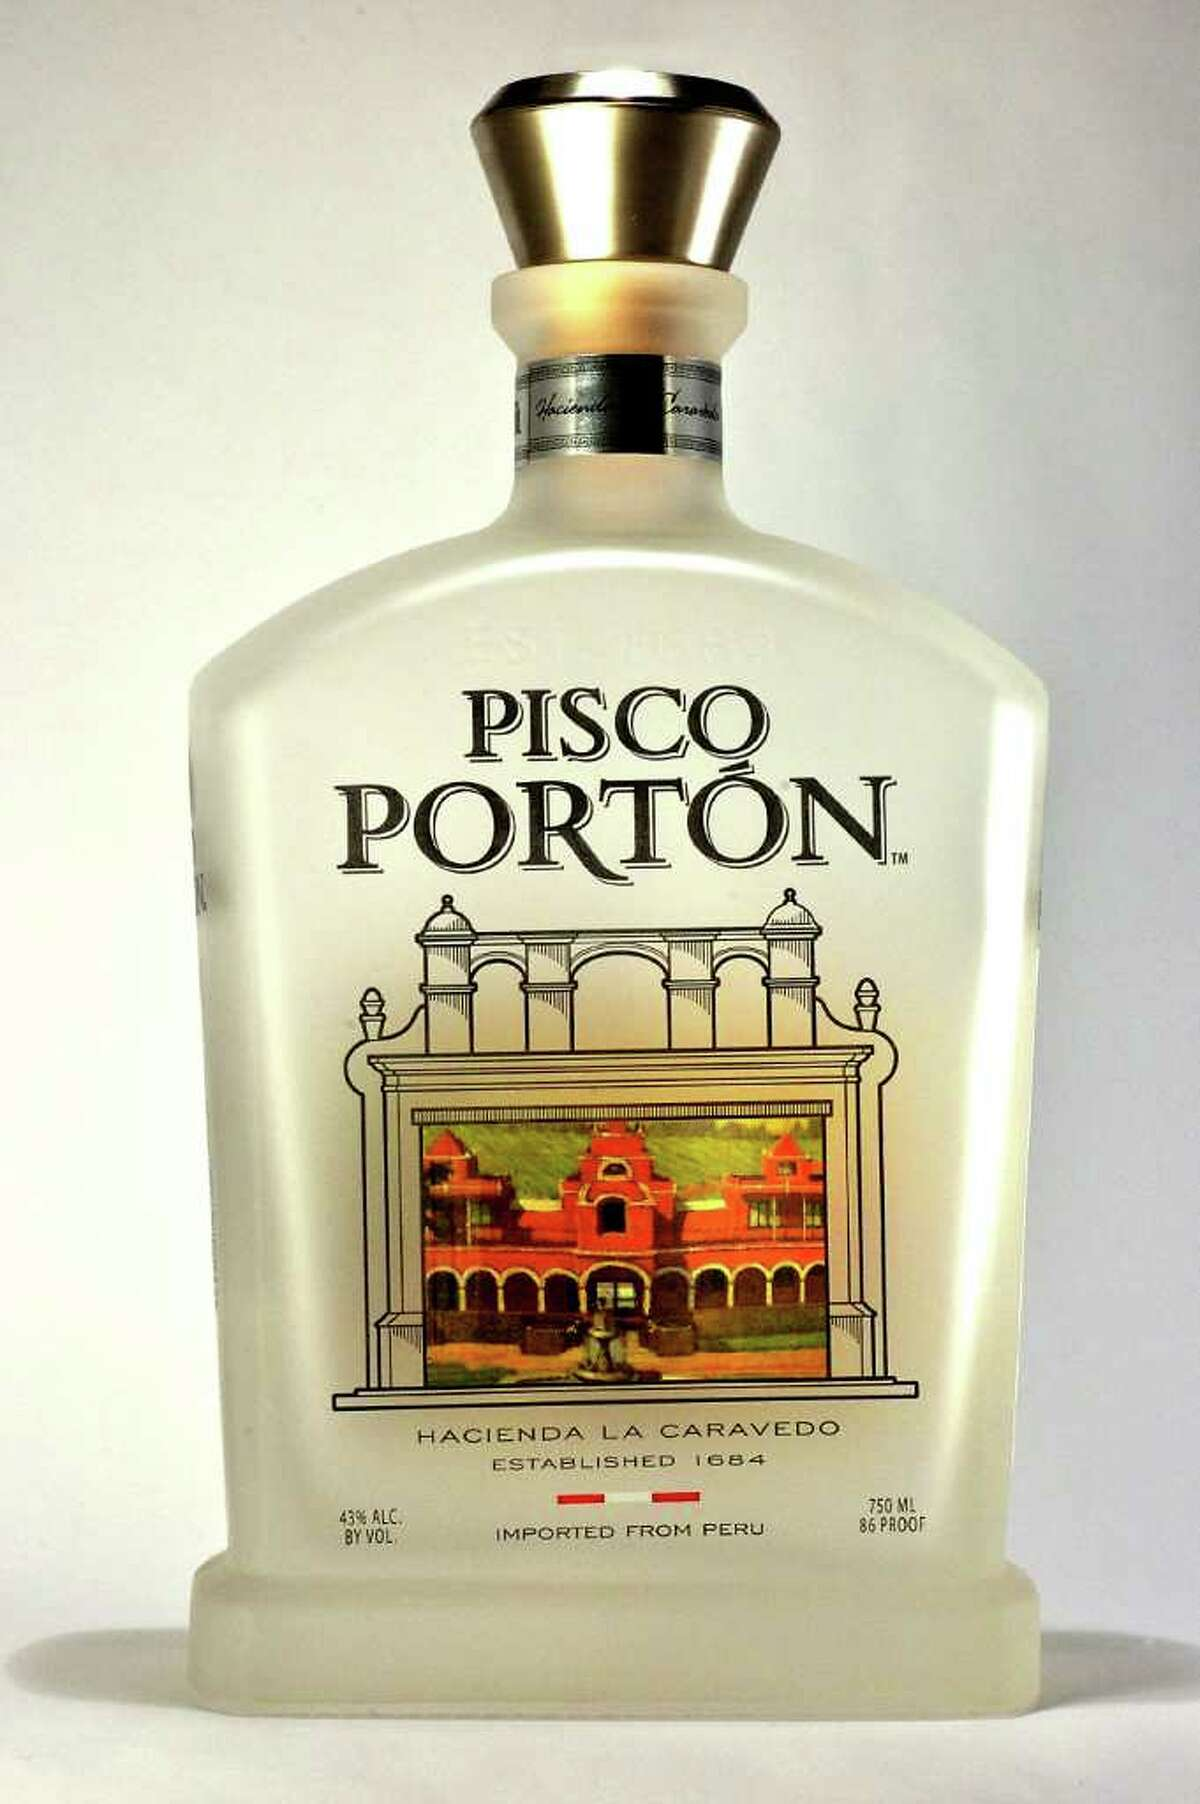 Pisco Porton, a new brand of Peruvian brandy, is produced by Johnny Schuler.